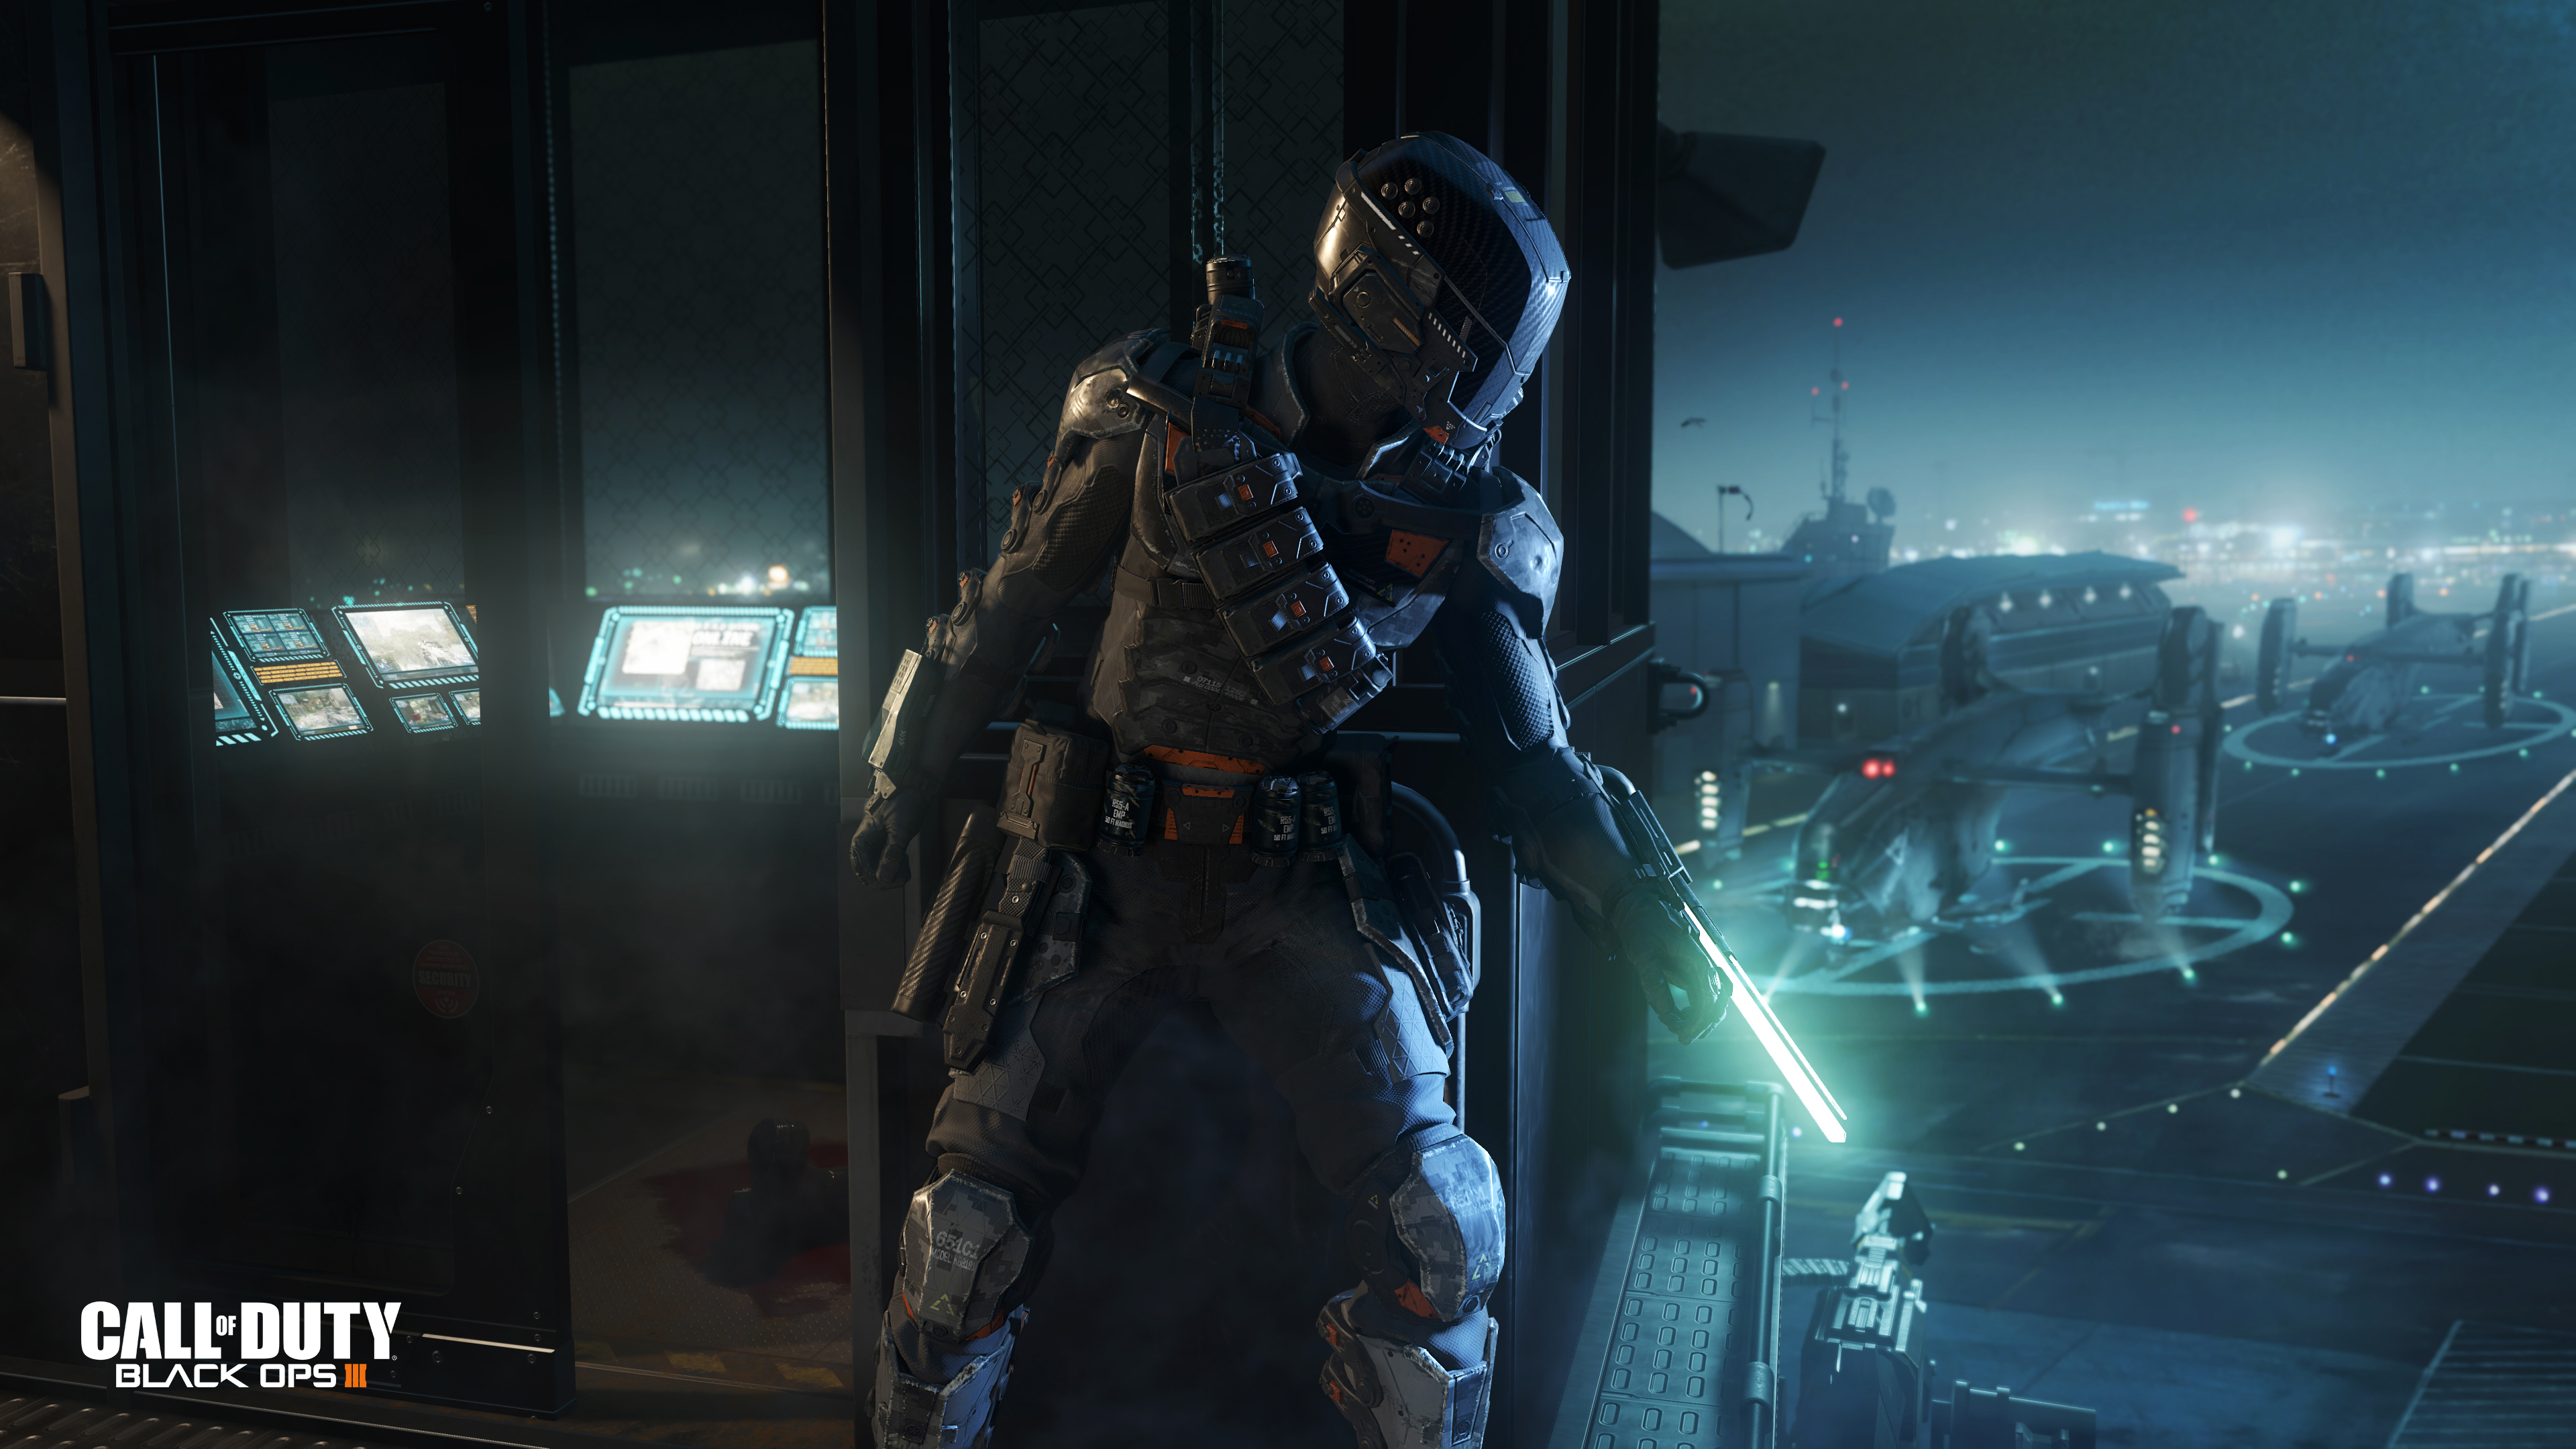 Last gen cant handle Black Ops 3 at 60FPS even with less fidelity 3840x2160